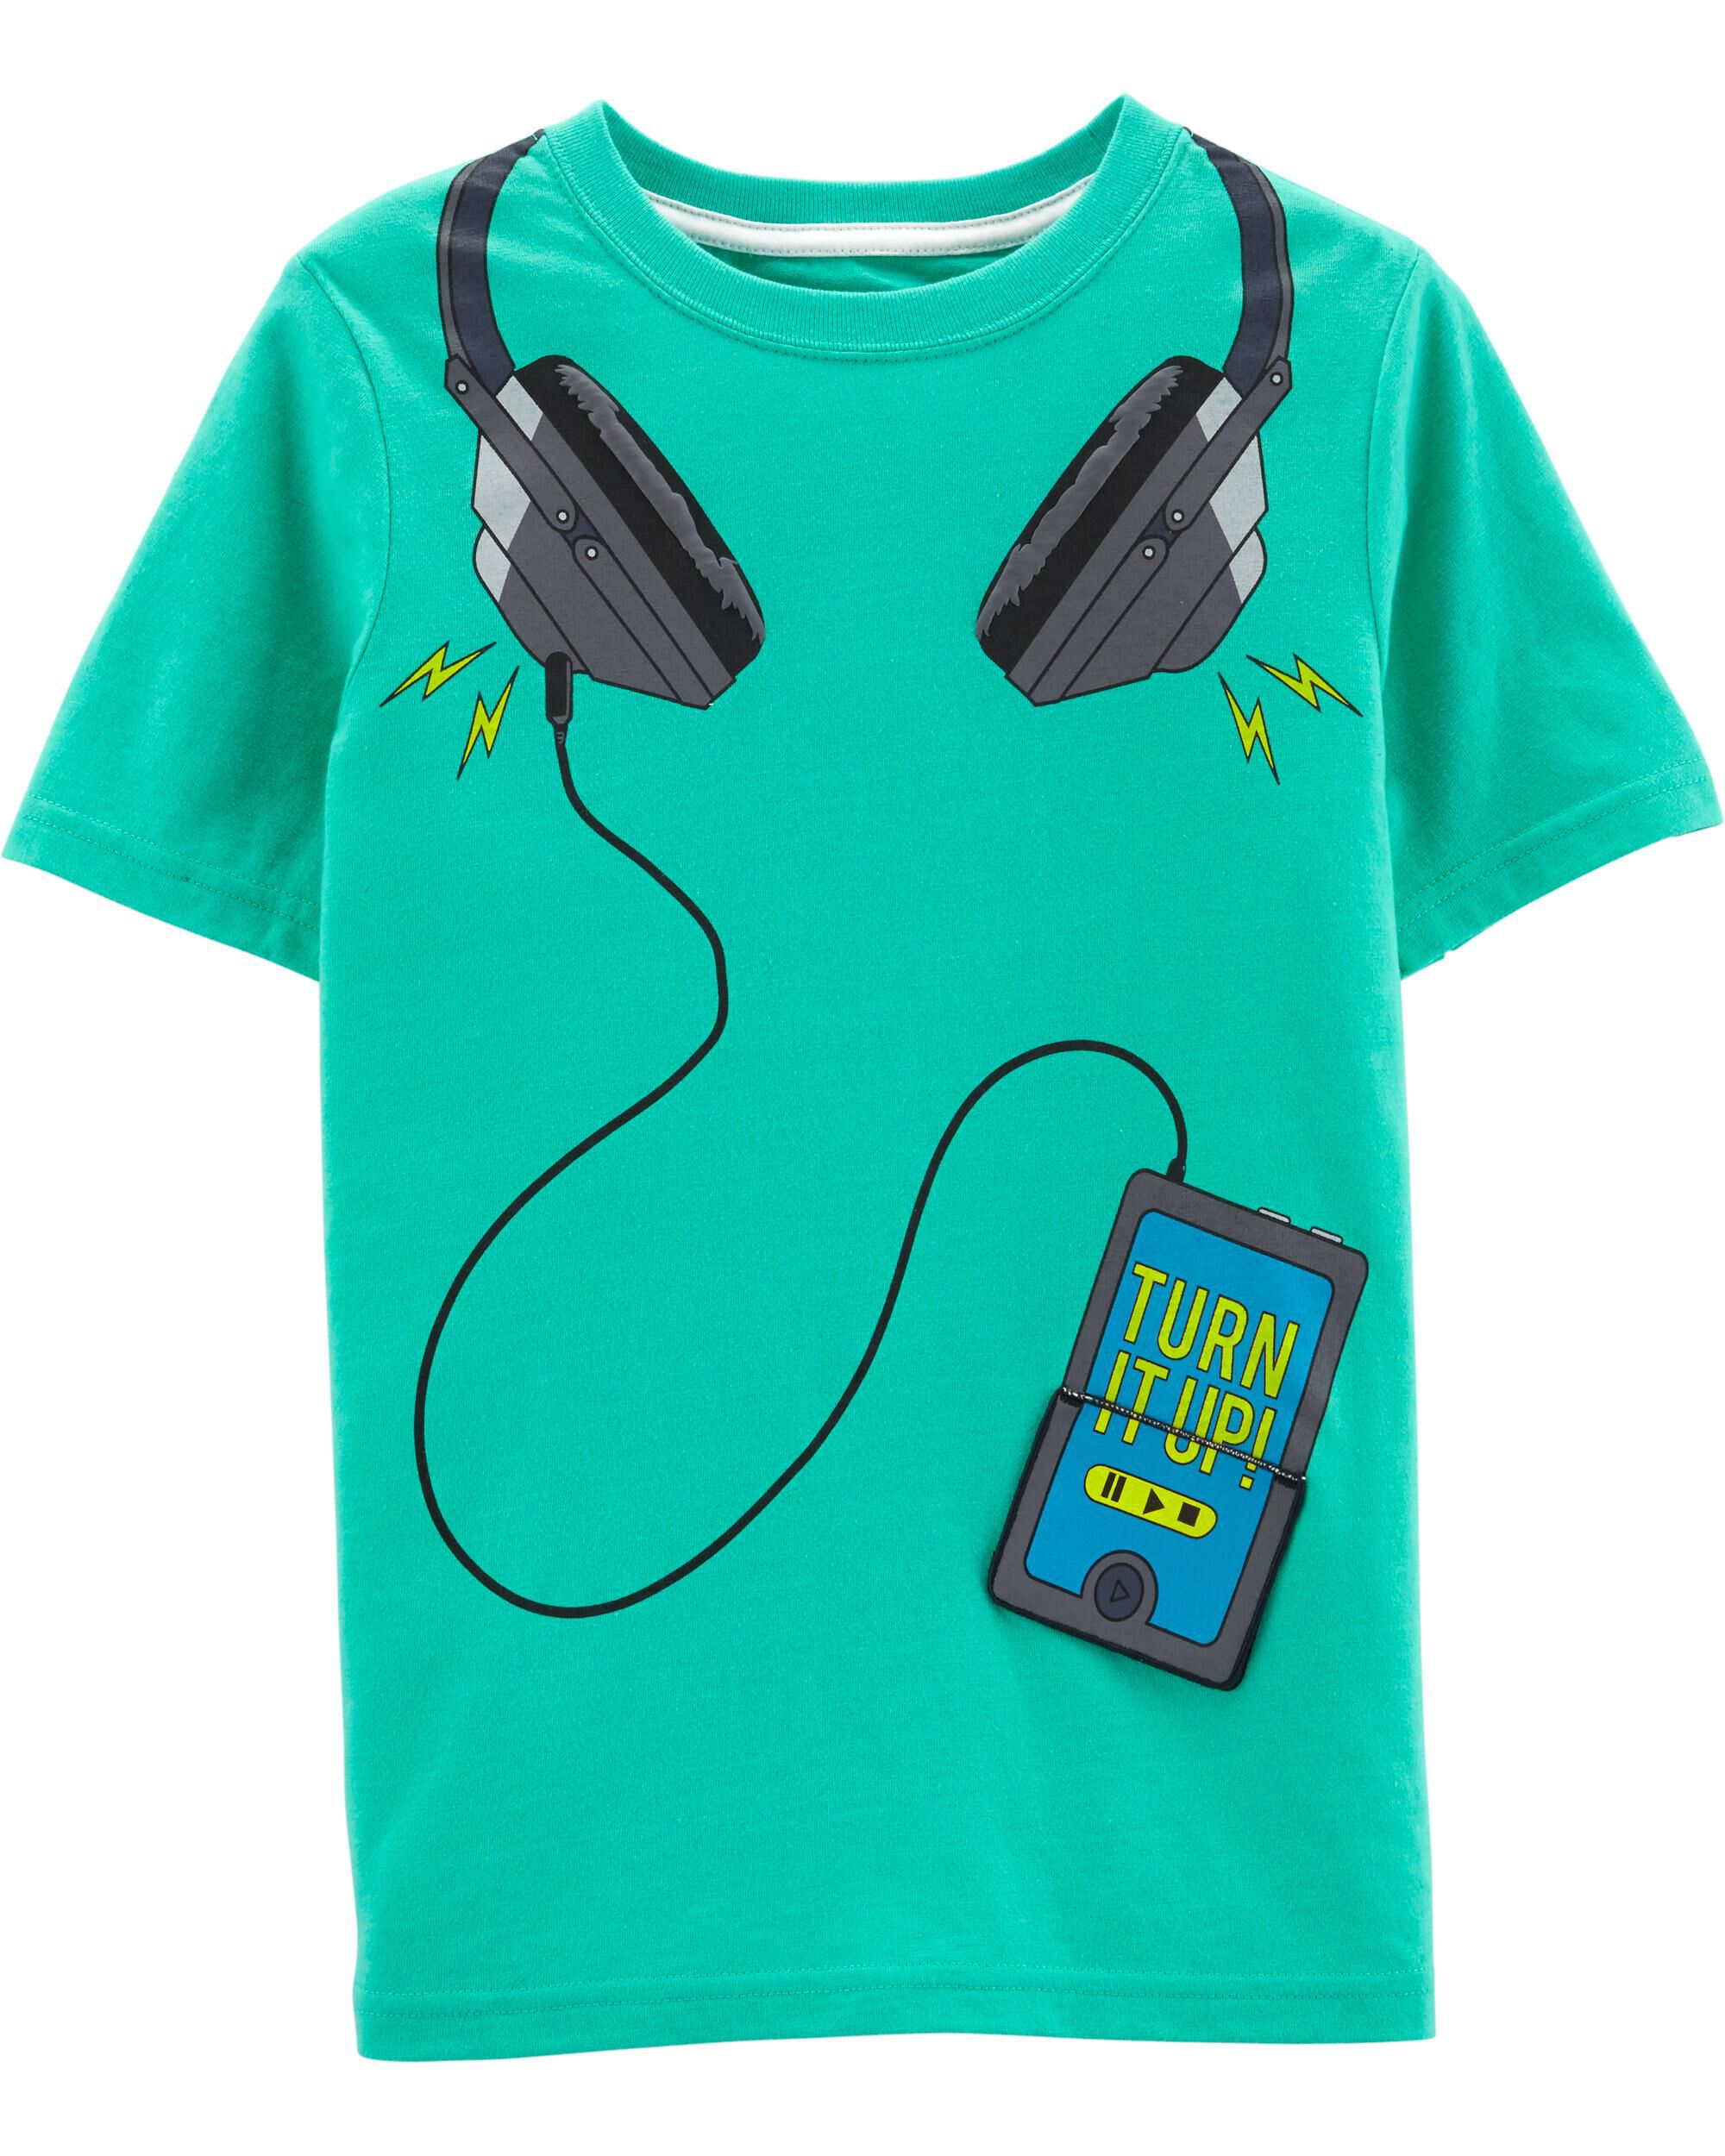 Display product reviews for interactive music player snow yarn tee also boys  shirts polo tops sizes carter  rh carters